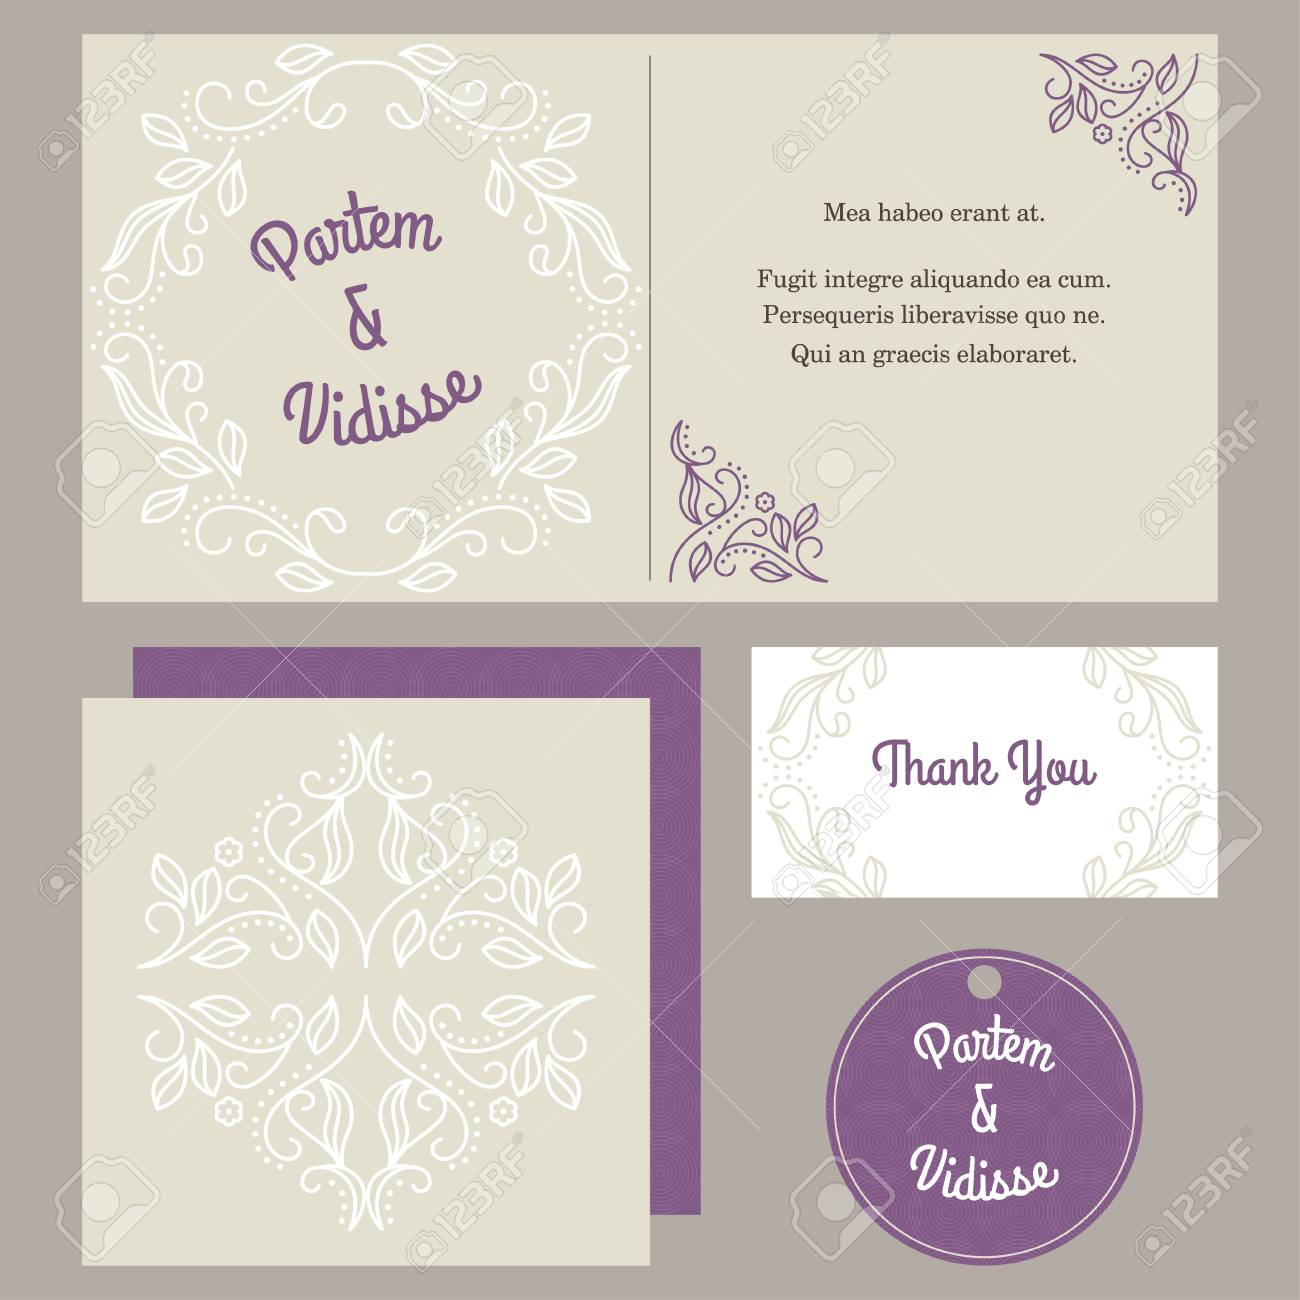 vector design template of wedding invitation with envelope royalty